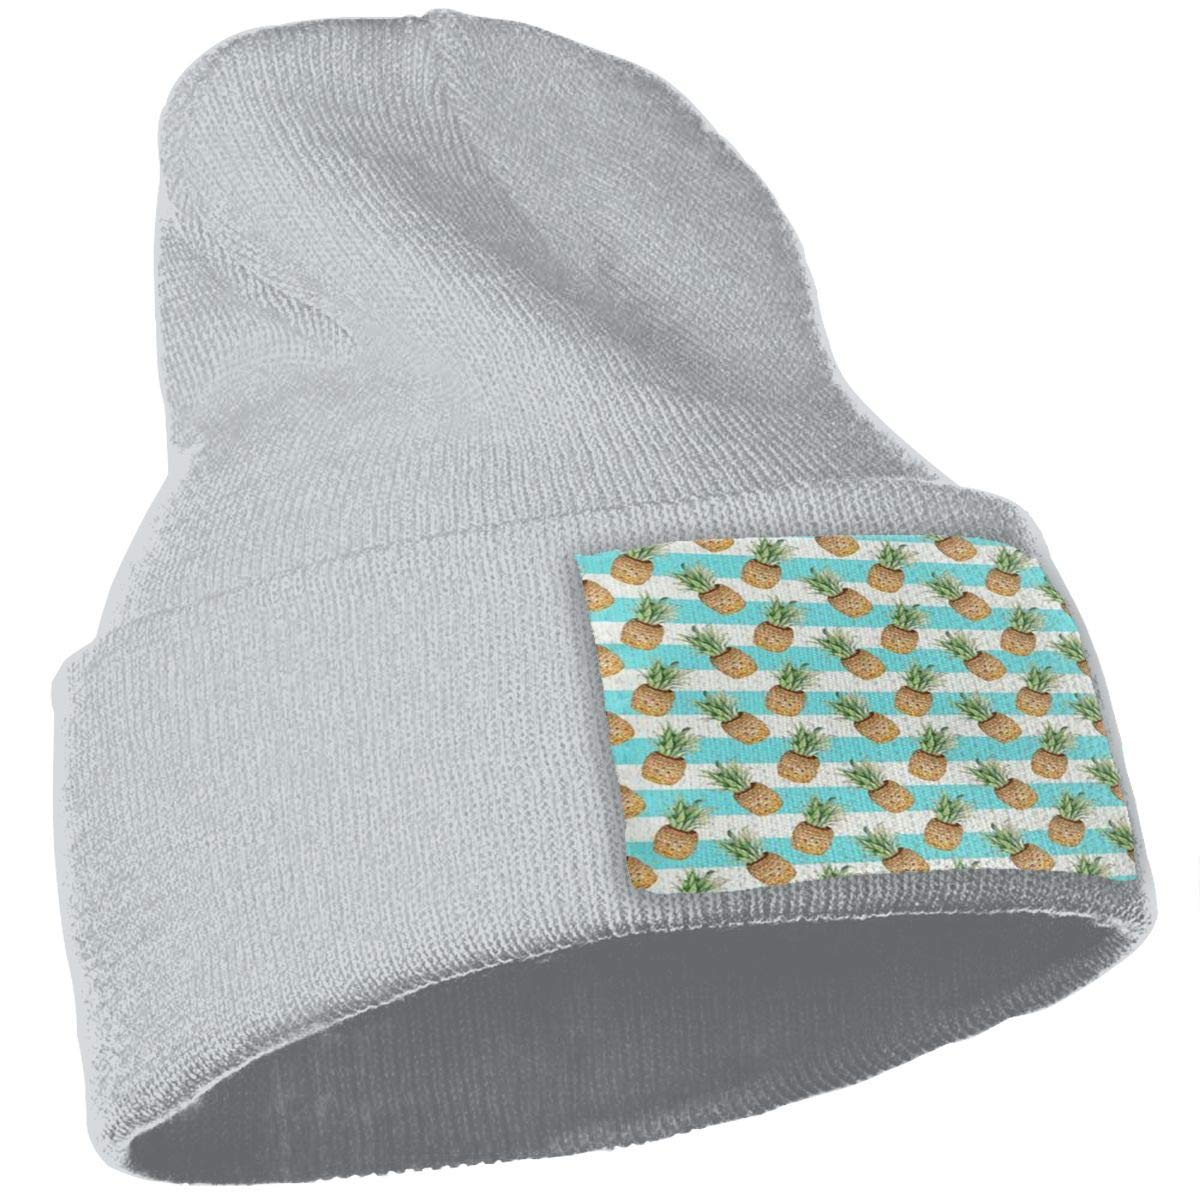 Pineapple and Striped Hat for Men and Women Winter Warm Hats Knit Slouchy Thick Skull Cap Black